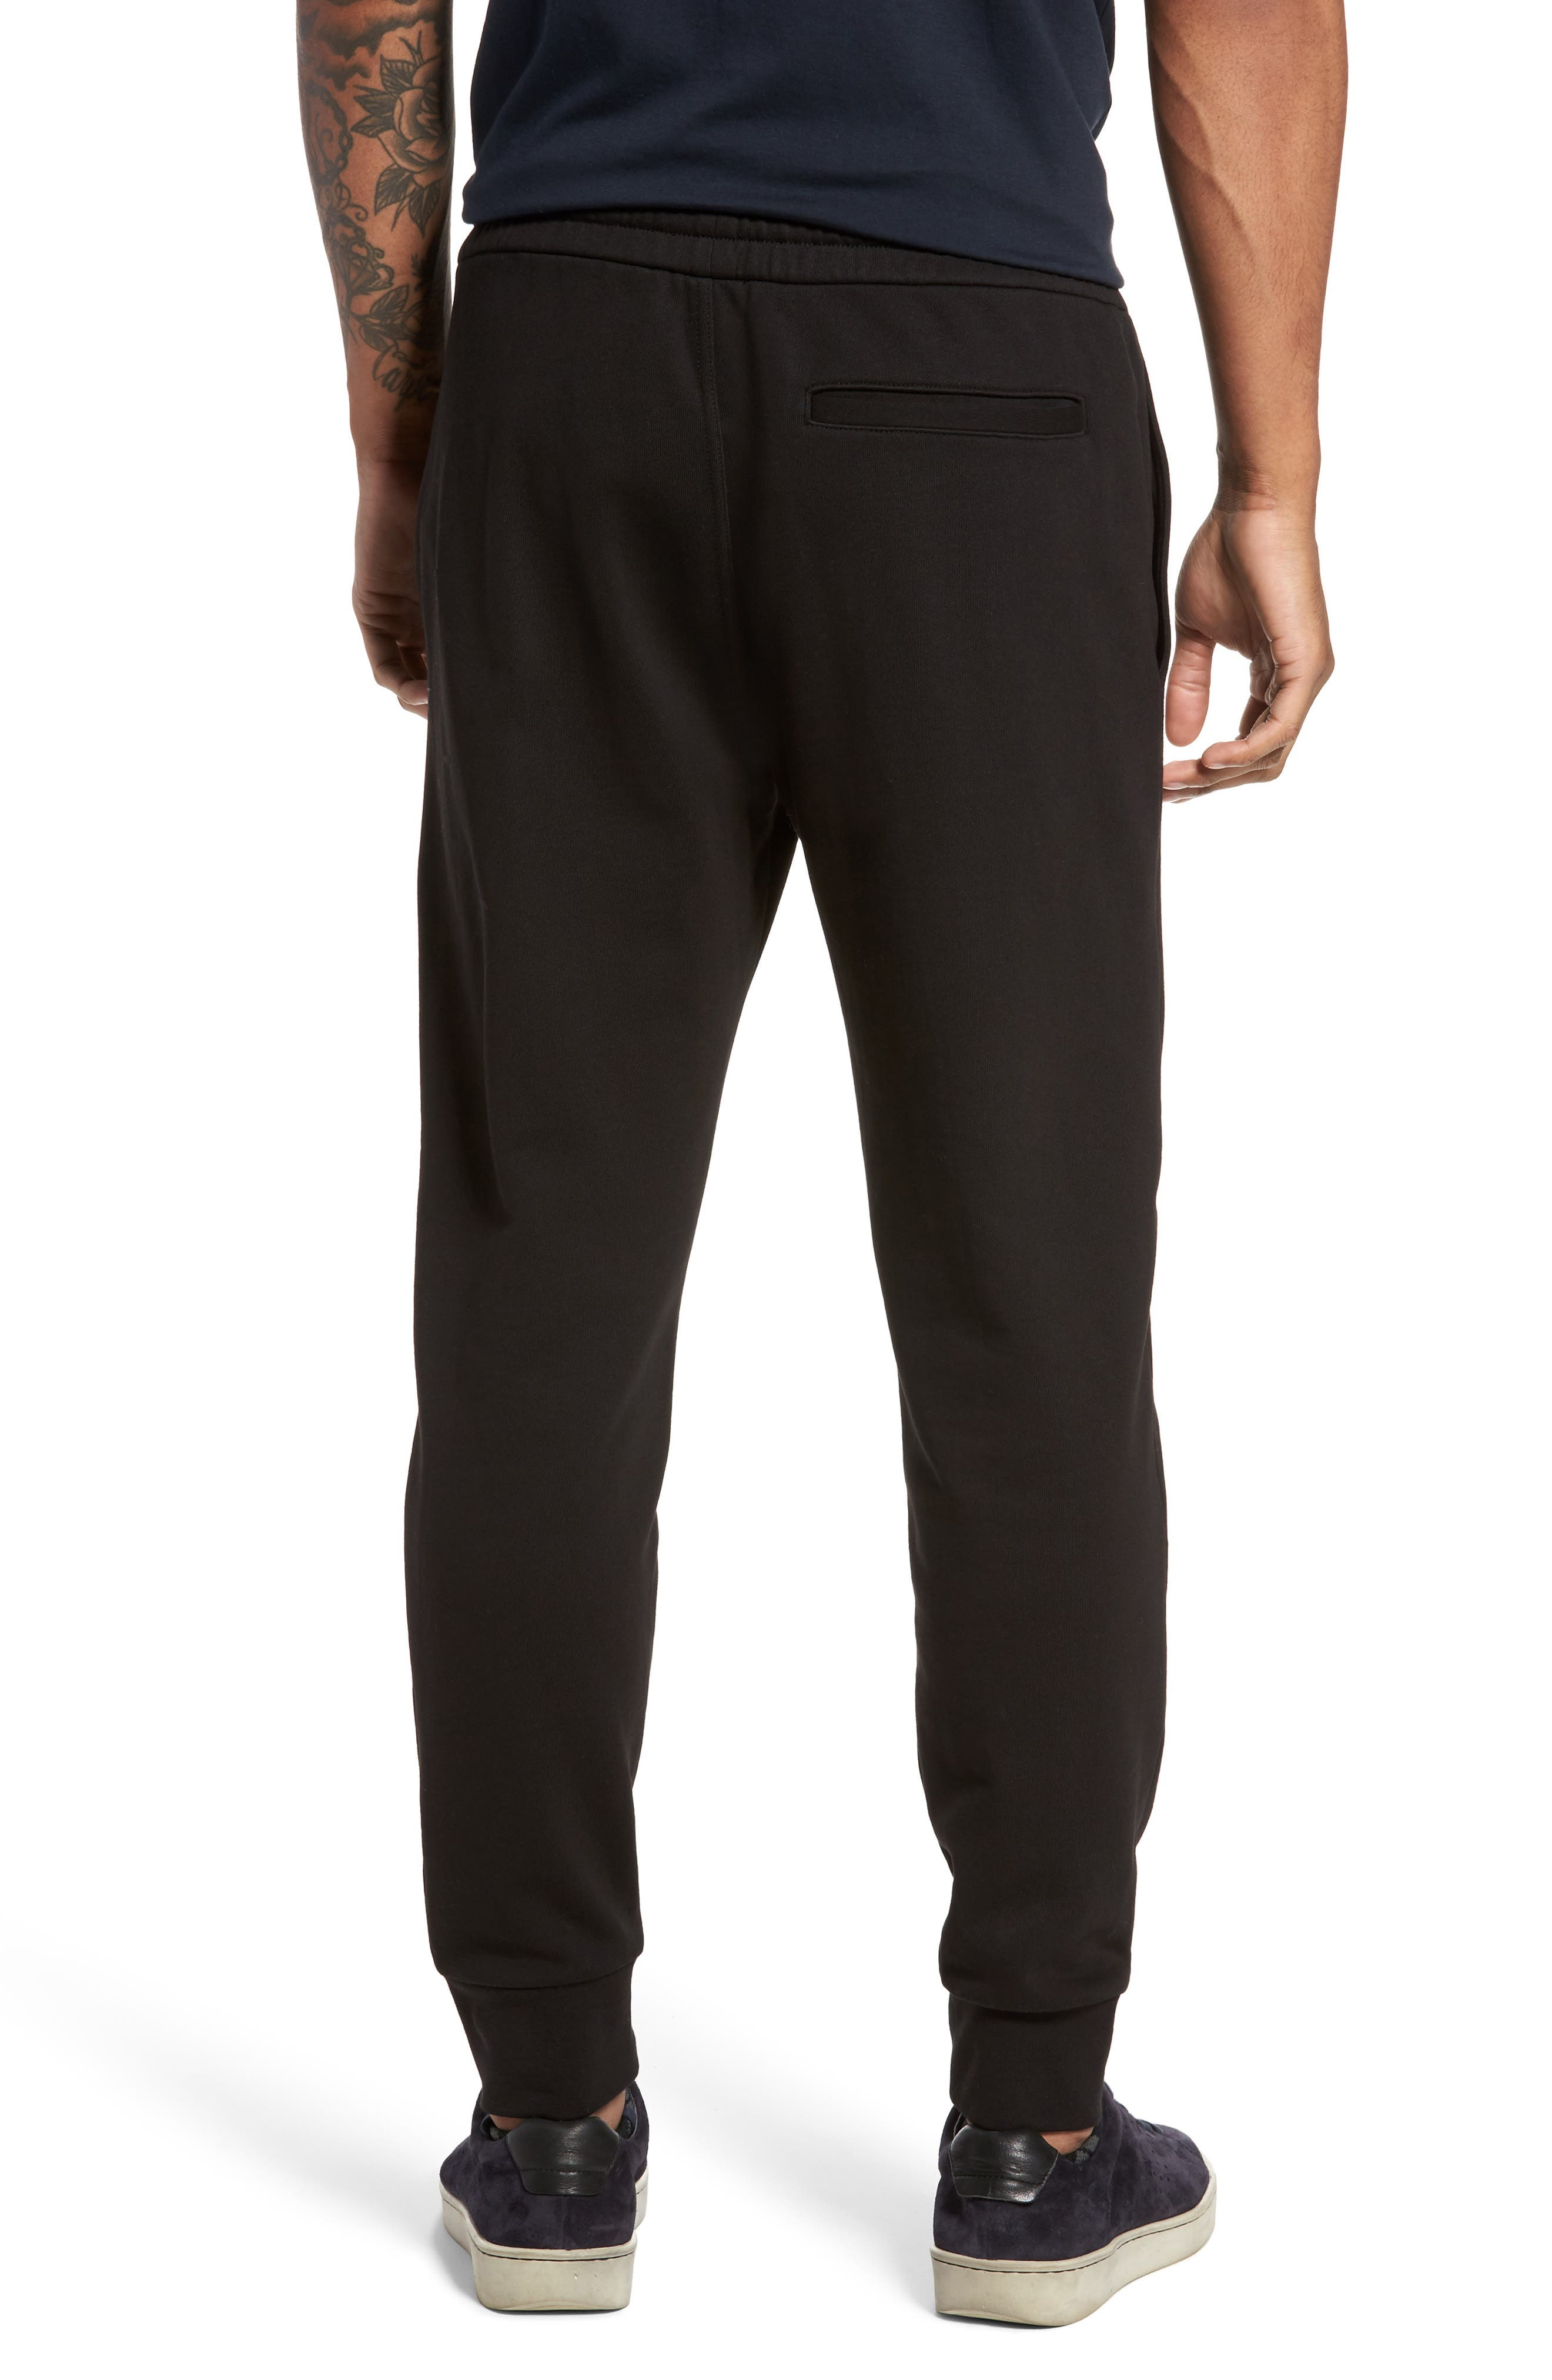 Cotton Sweatpants,                             Alternate thumbnail 2, color,                             Black